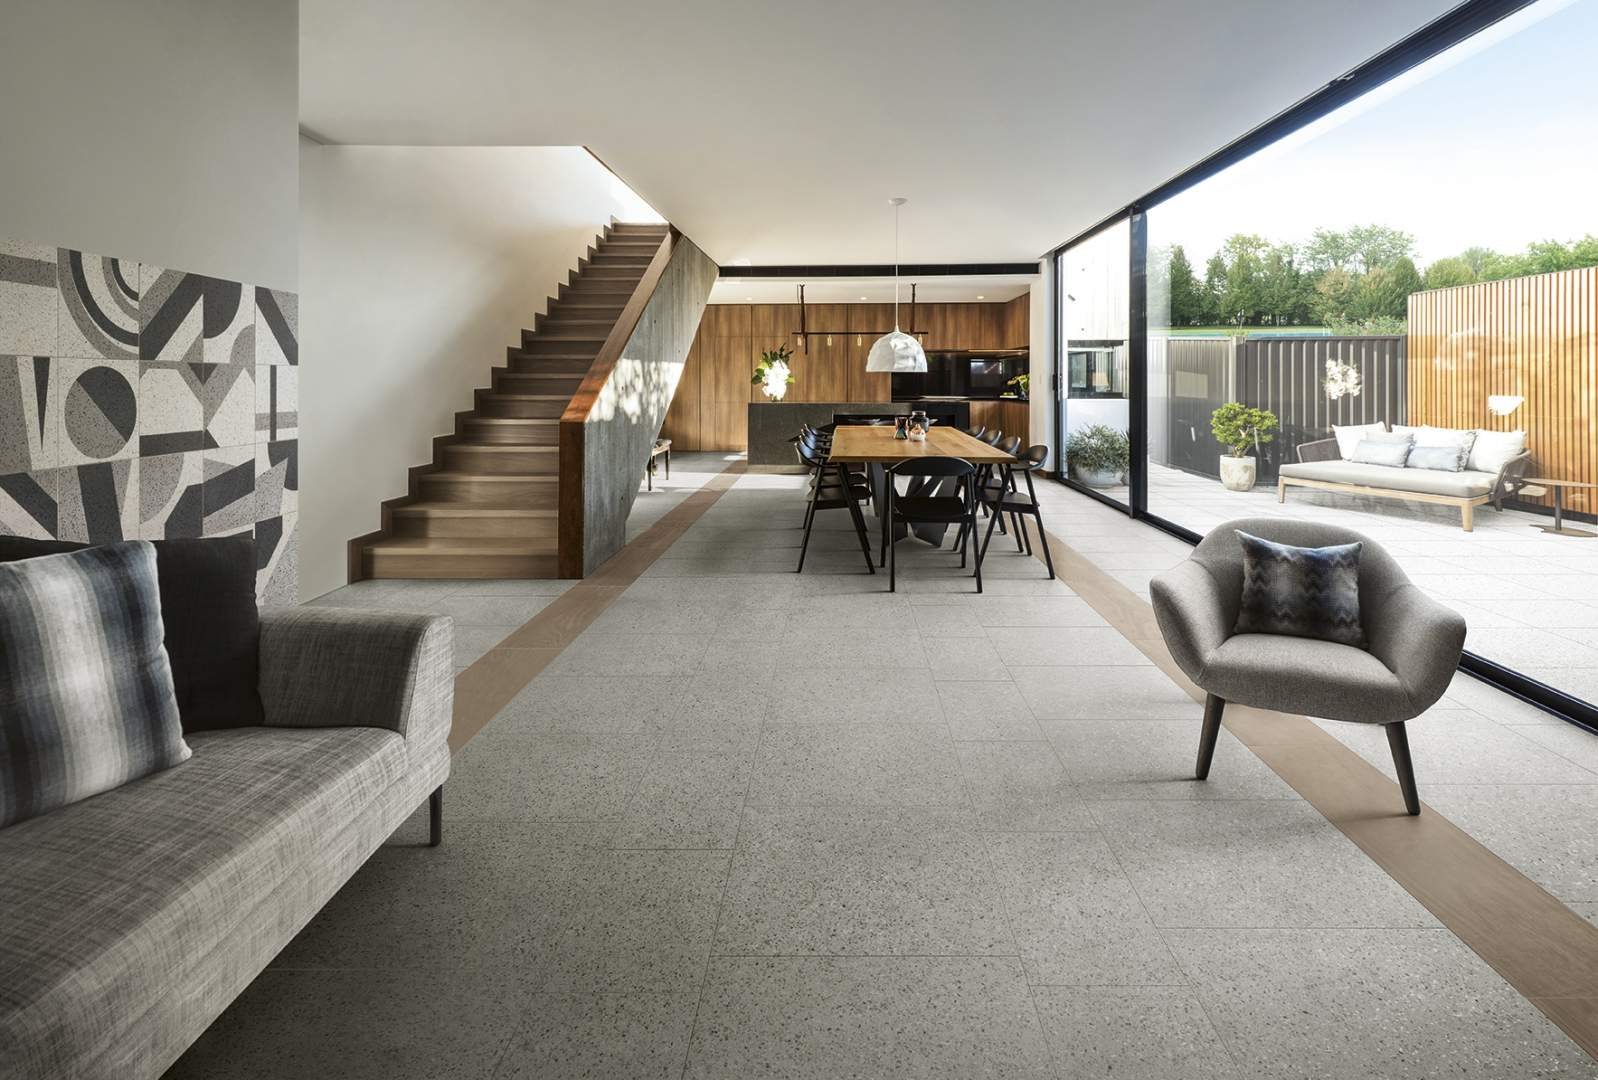 Terrazzo Floor Tiles At Italian Tile Stone Dublin - How to maintain terrazzo floors